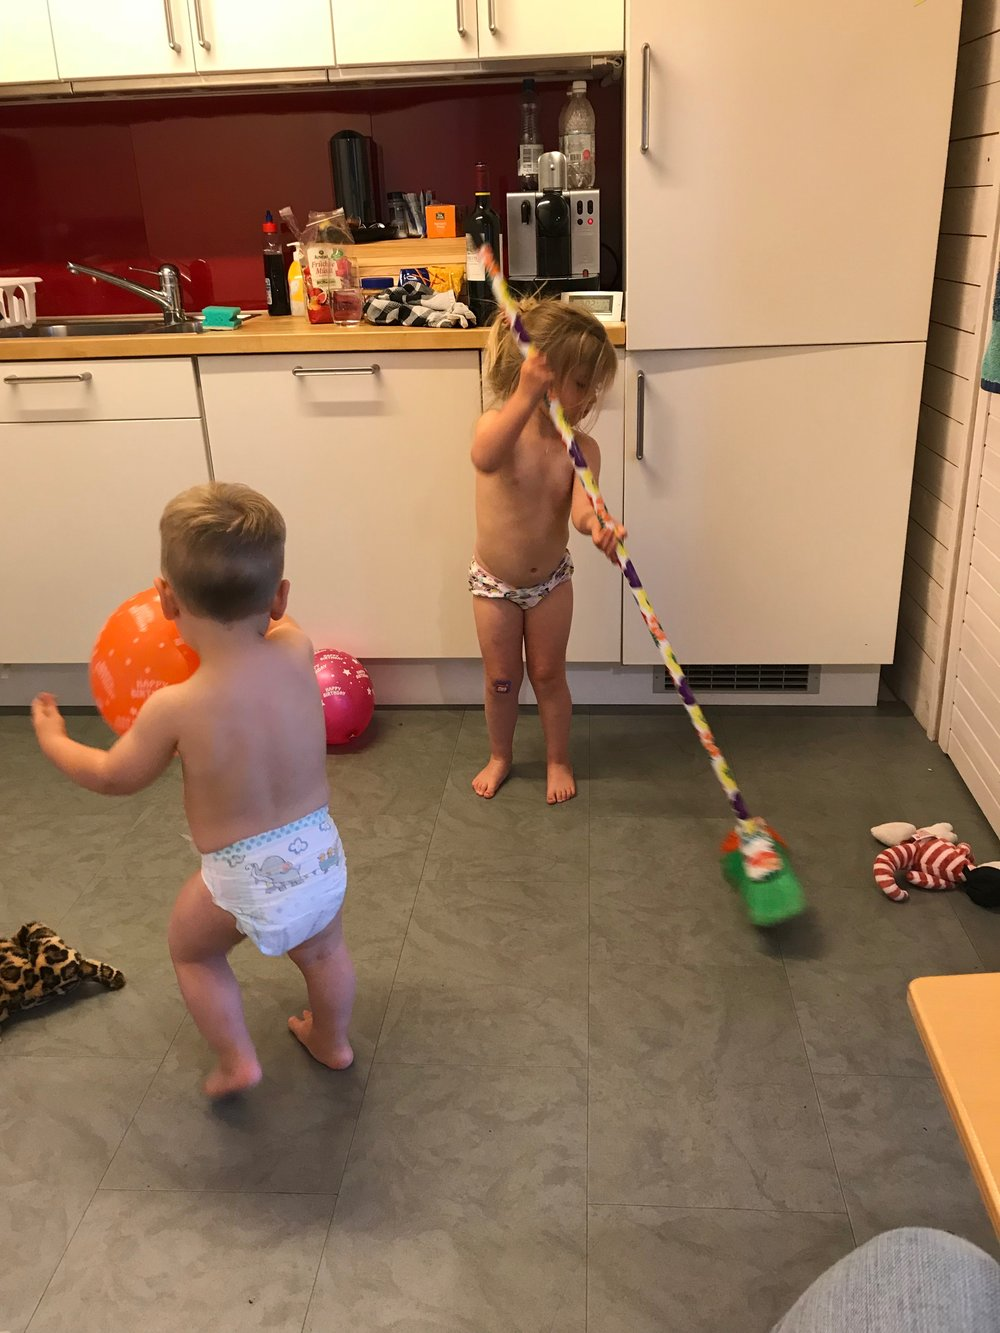 Kids are expensive, so put them to work!  Just kidding!  But diapers are very expensive in Switzerland., so plan ahead!  (The kids are cleaning our airbnb in Bern here)